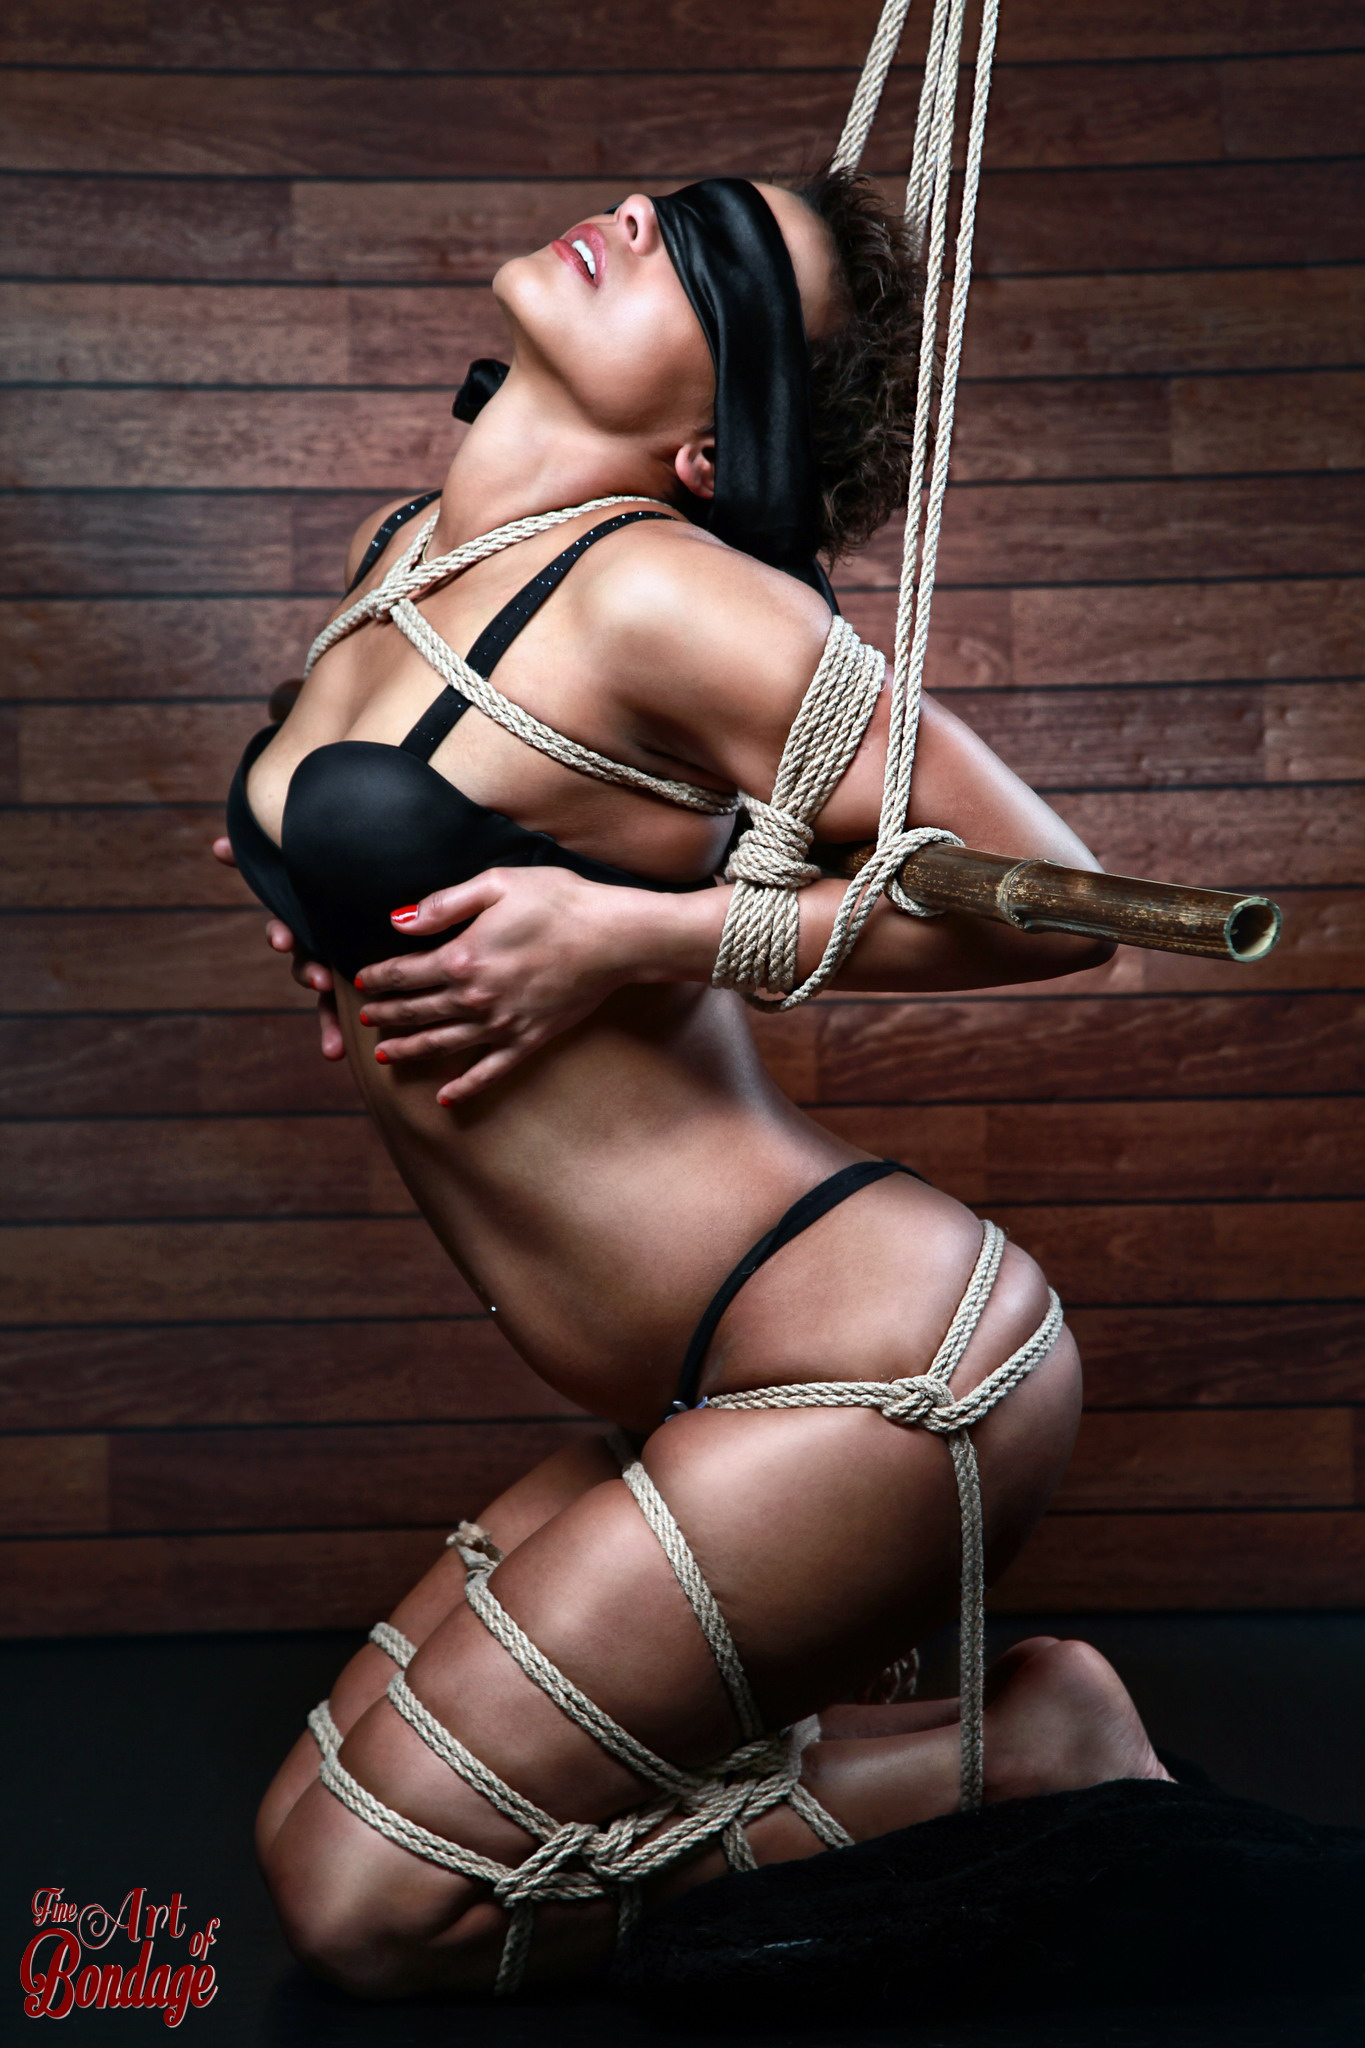 hogtied bondage sex callgirls munchen